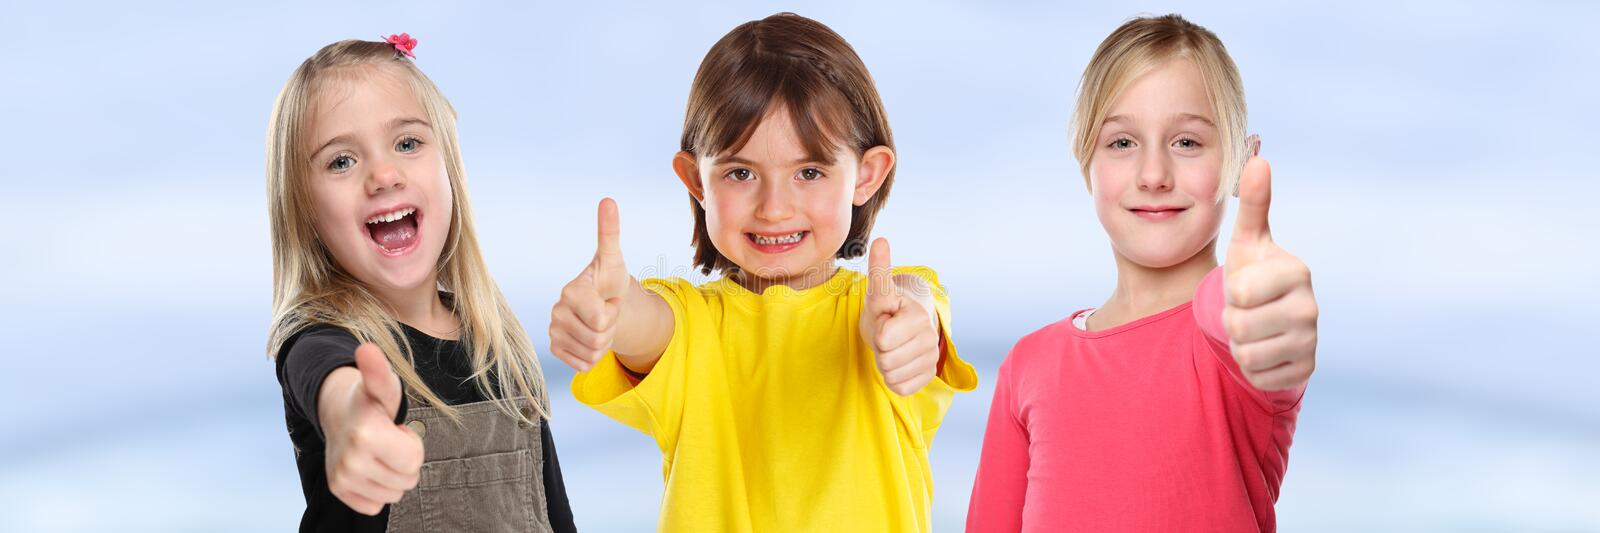 Group of children kids smiling young little girls success thumbs up positive banner. Young royalty free stock photography